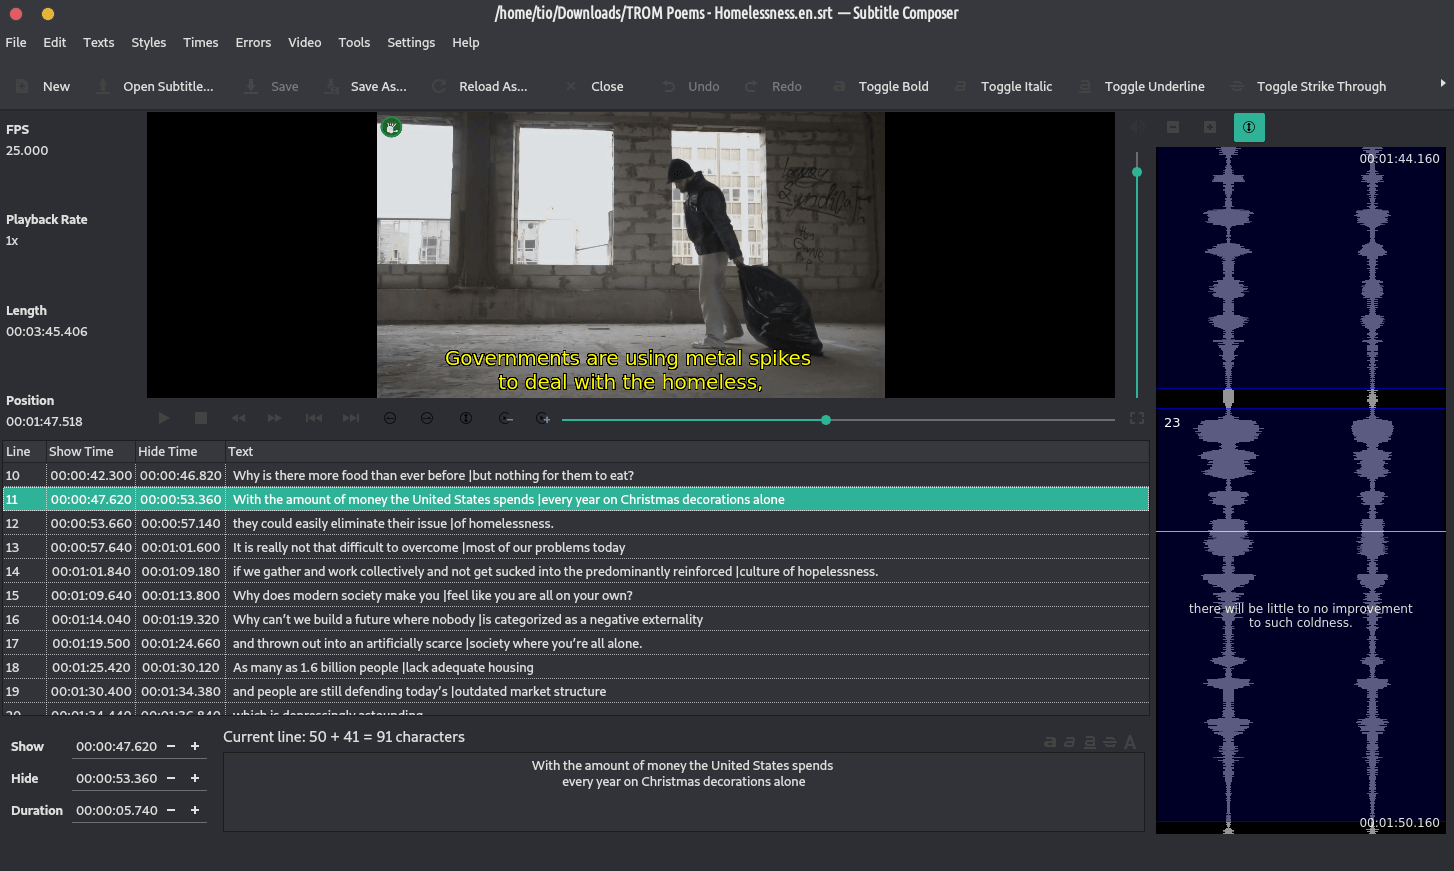 subtitlecomposer 1